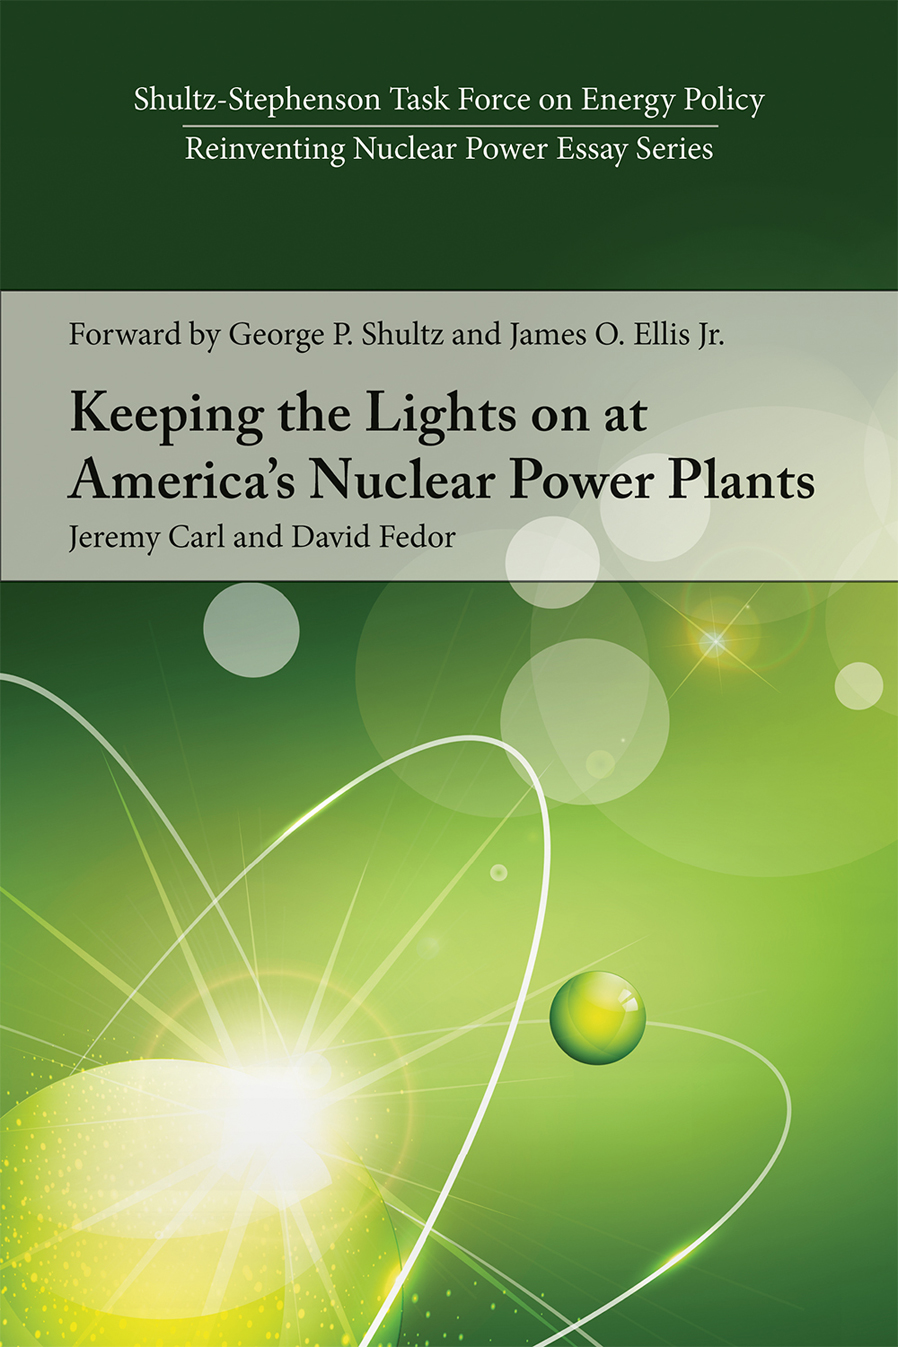 reinventing nuclear power hoover institution essay series